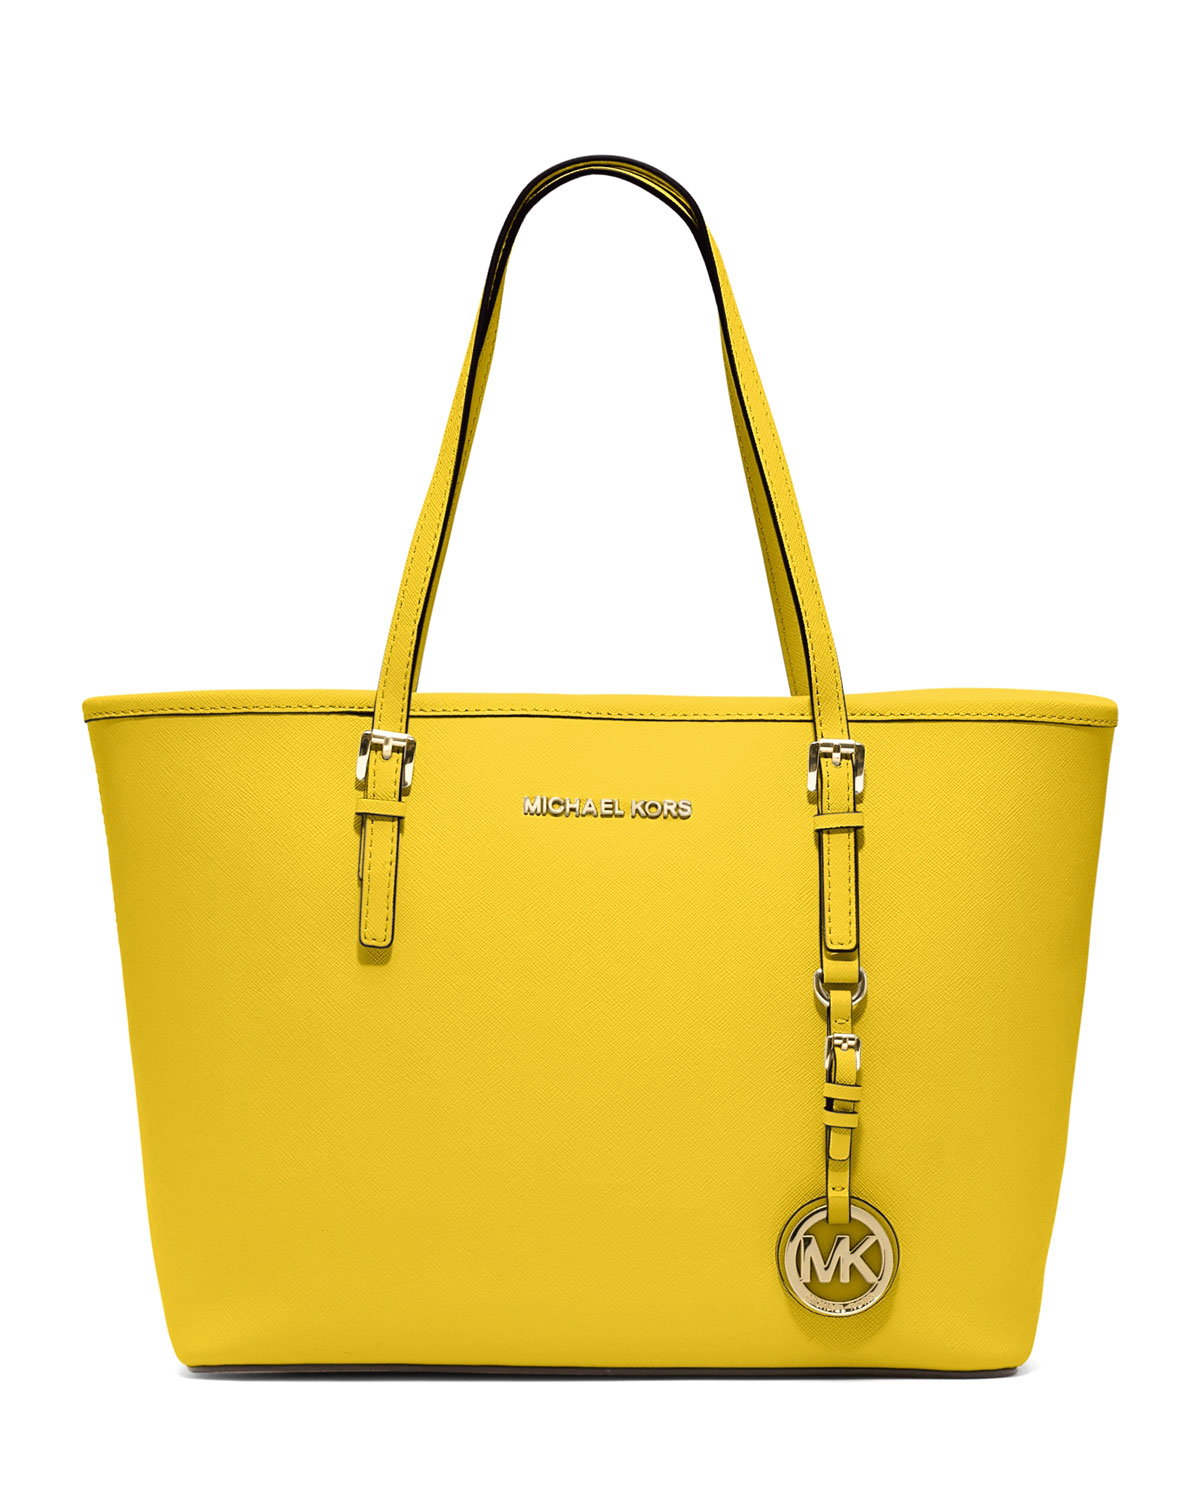 michael kors small jet set saffiano travel tote in yellow lyst. Black Bedroom Furniture Sets. Home Design Ideas